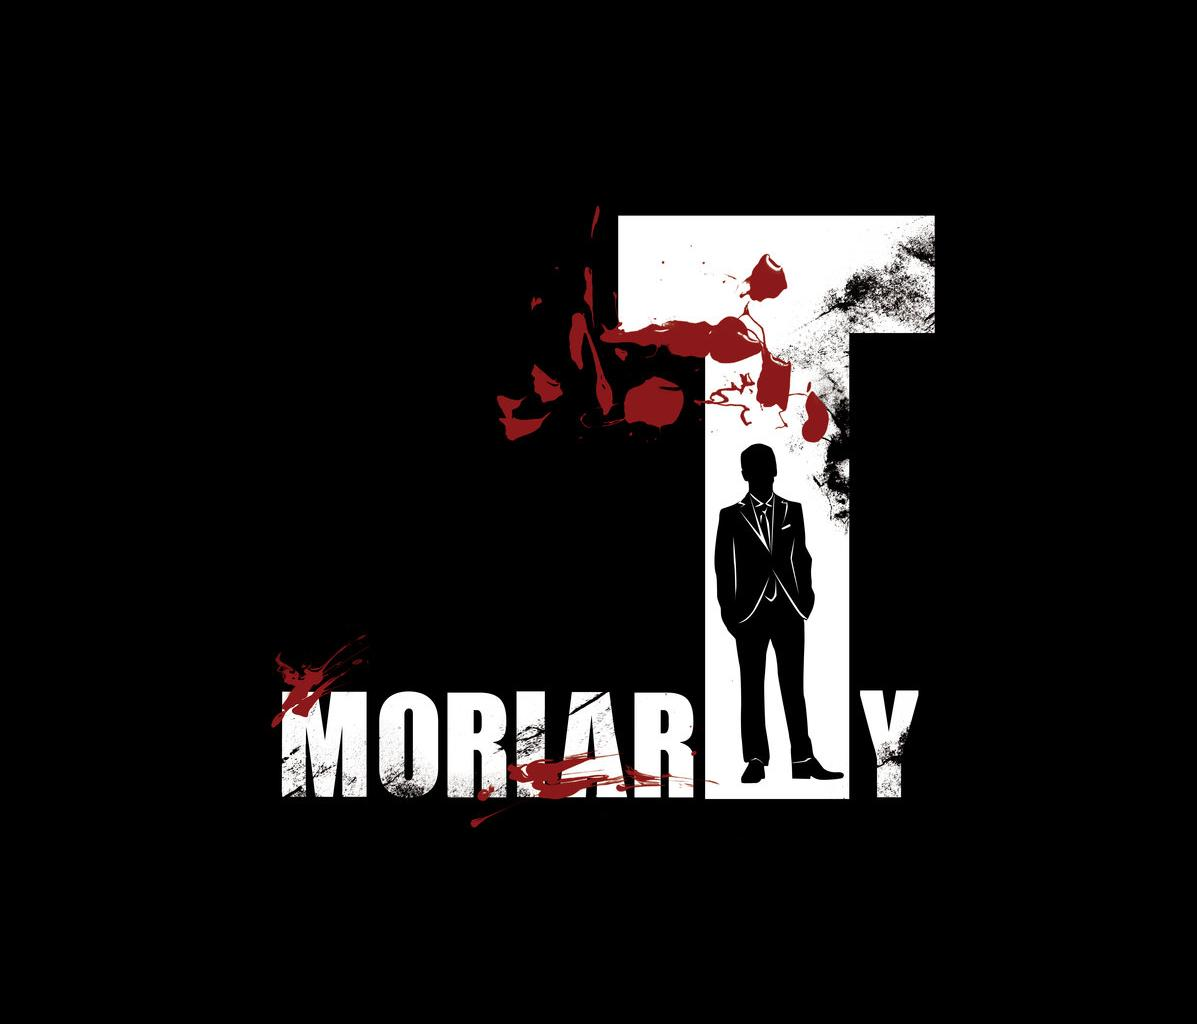 Moriarty wallpaper iphone